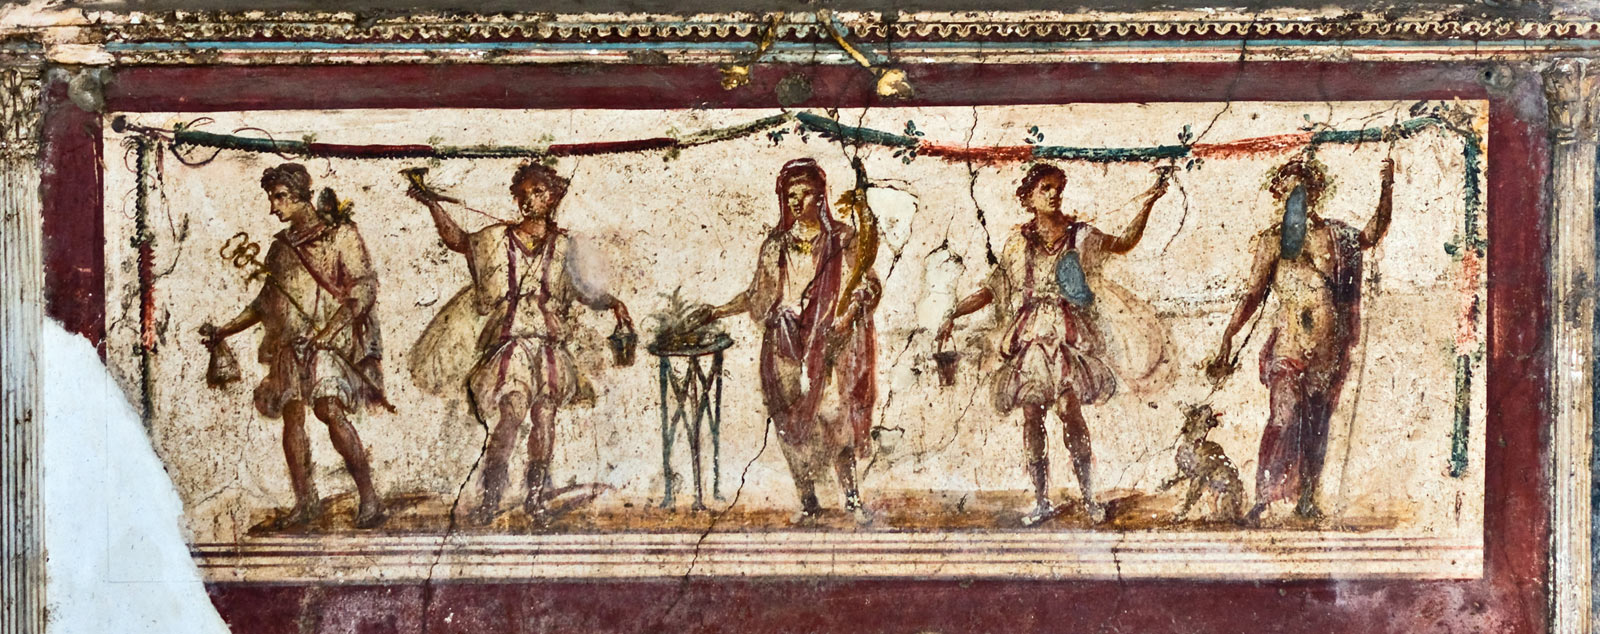 An old mural of several traditionally dressed Roman figures